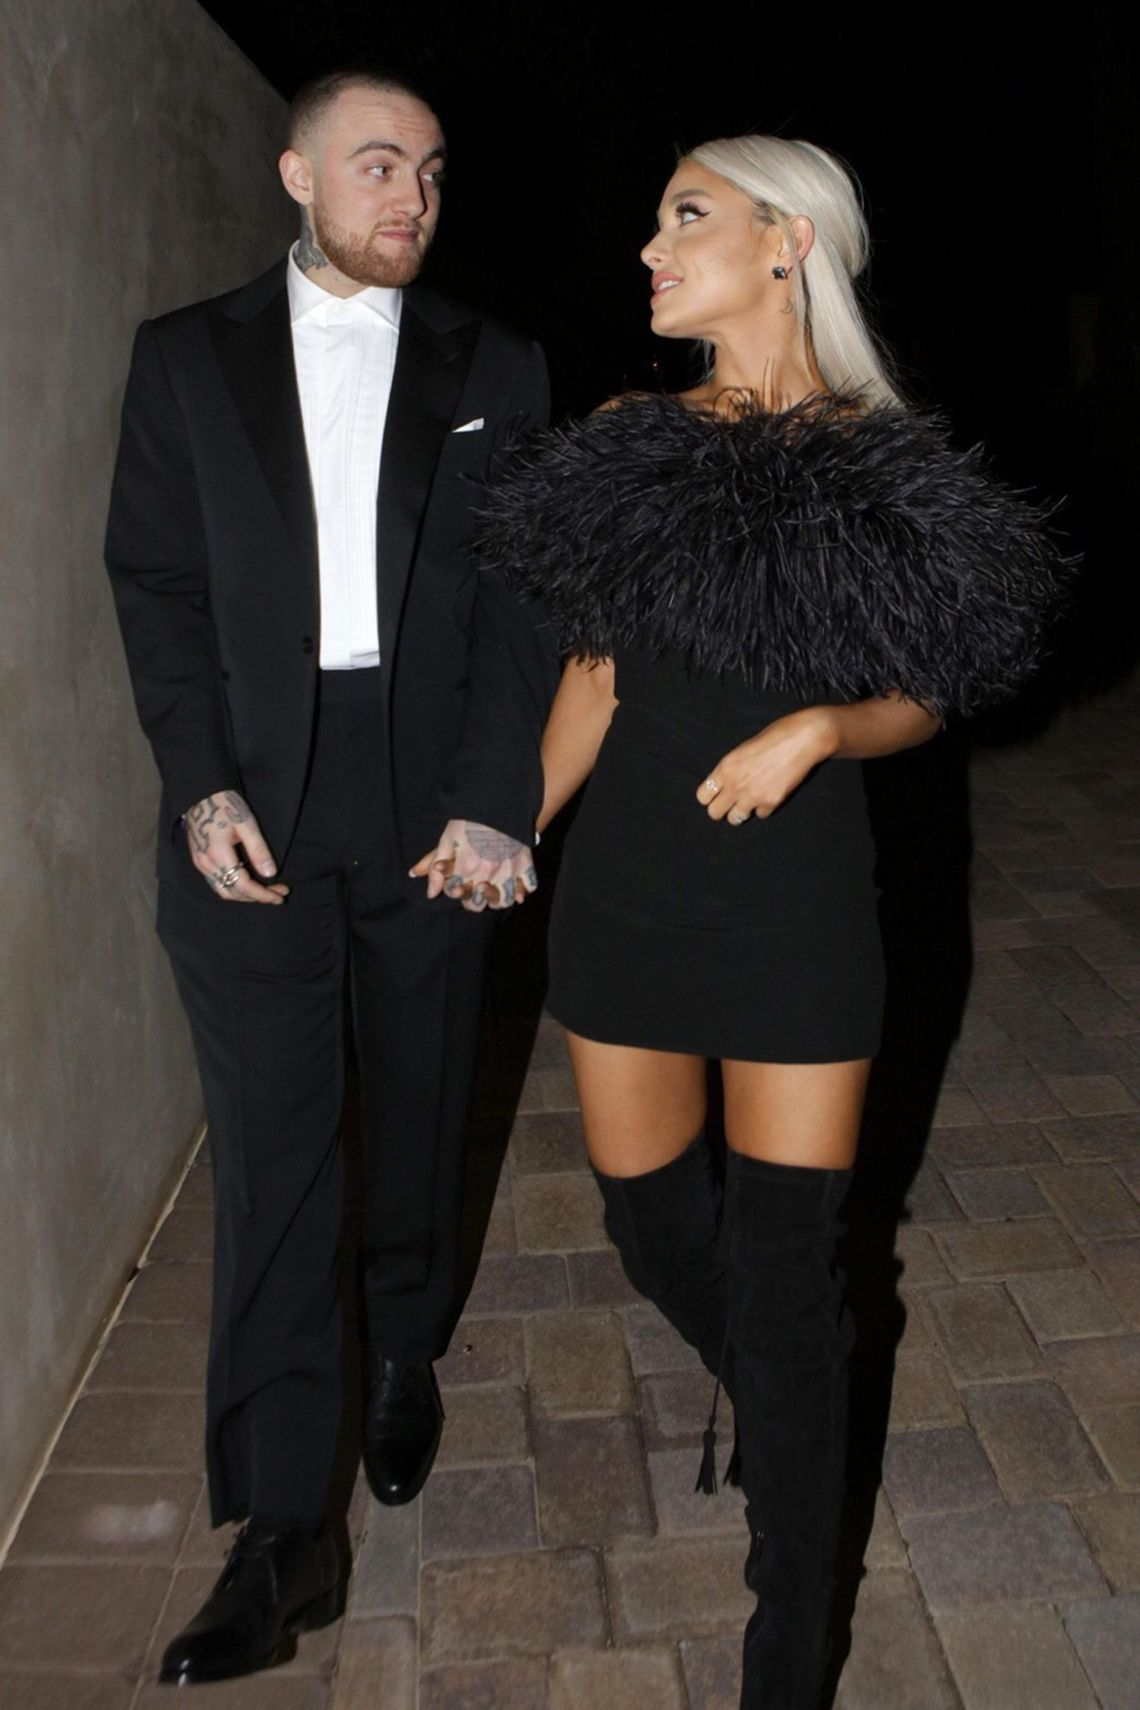 Ariana Grande Was A 'Stabilising Force' In Mac Miller's Life, Insists Close Friend